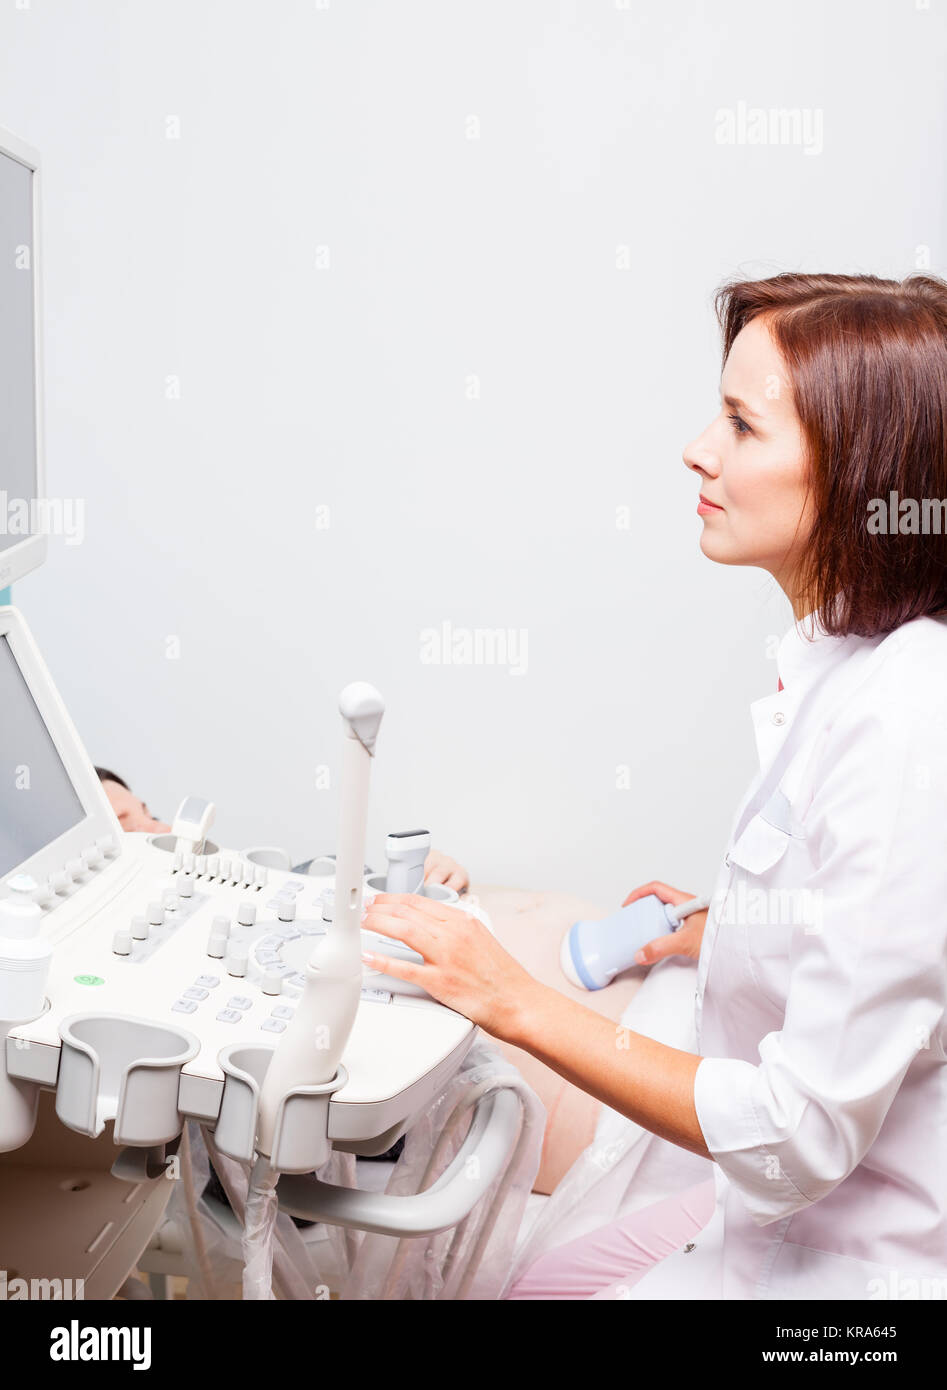 Sonographer scanning young pregnant woman's belly with ultrasonic transducer doing obstetric ultrasonography - Stock Image